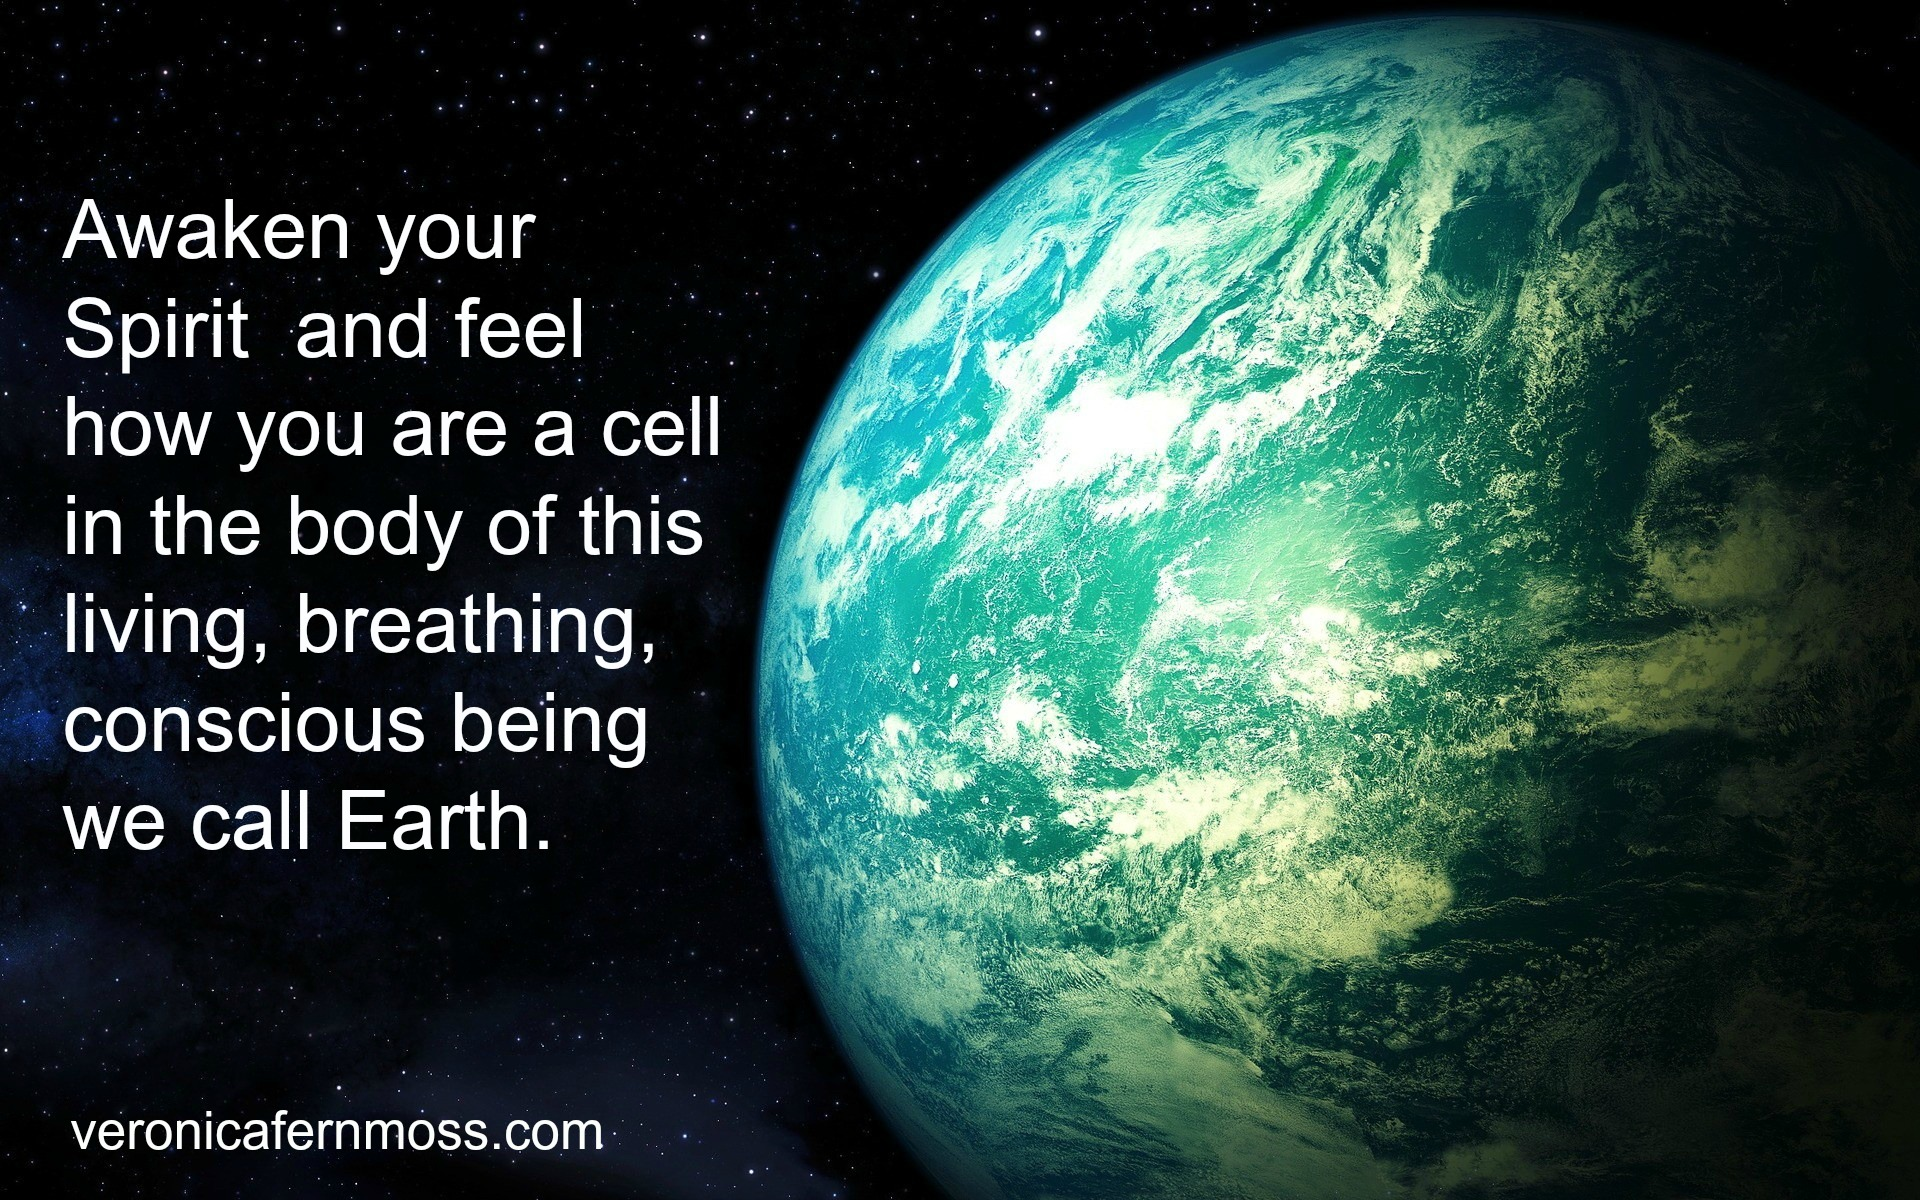 cell in the body of the Earth